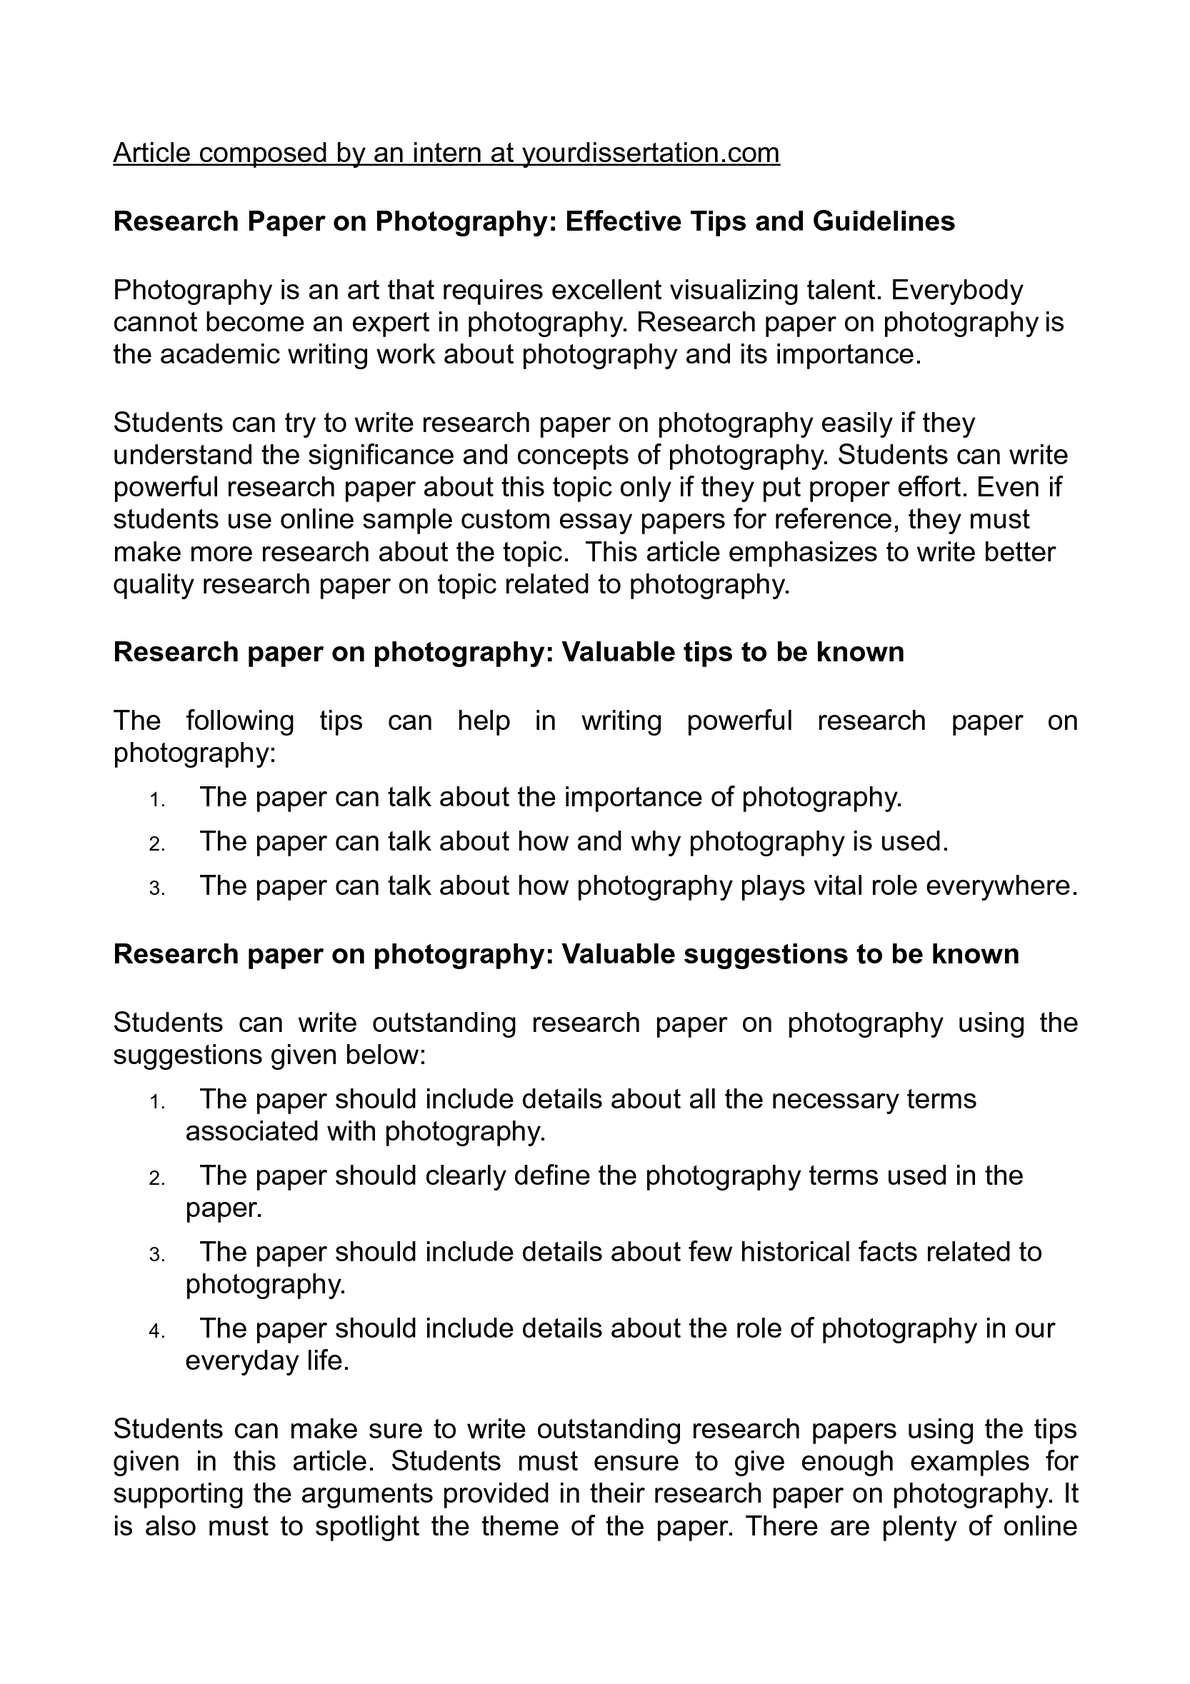 006 Research Paper P1 Imposing Arguments Argumentative Introduction Full